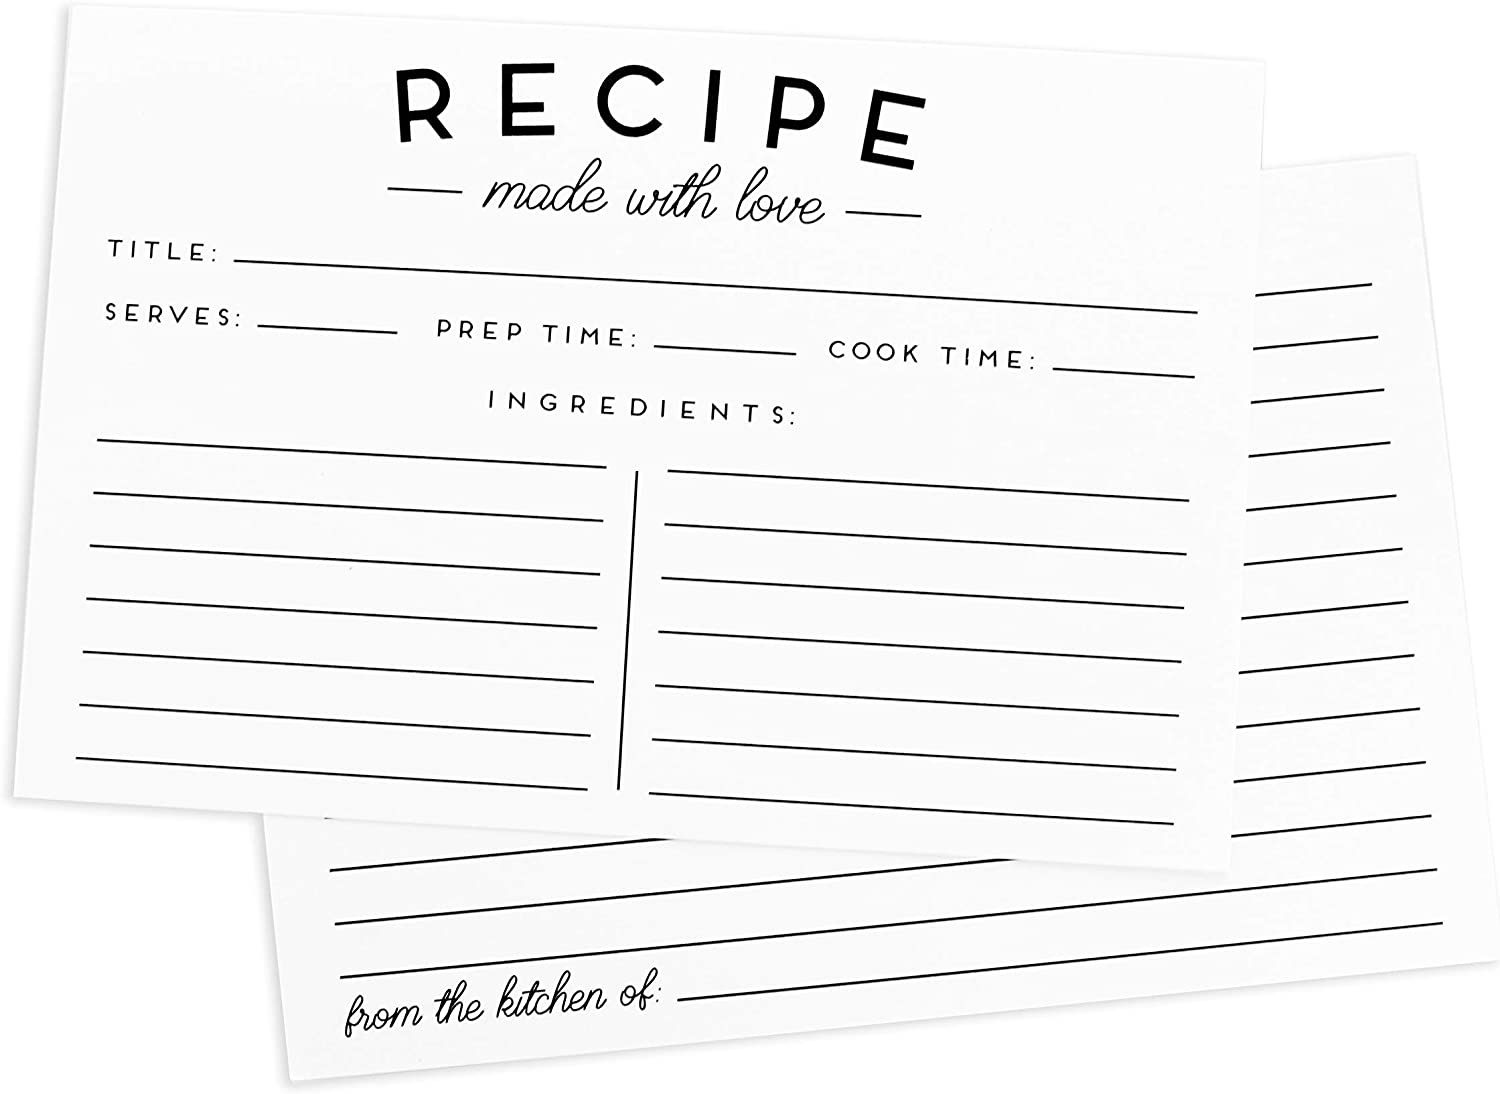 This is an image of a recipe card in white color with wordings indicating the Title of the Recipe, serves, prep and cook time.